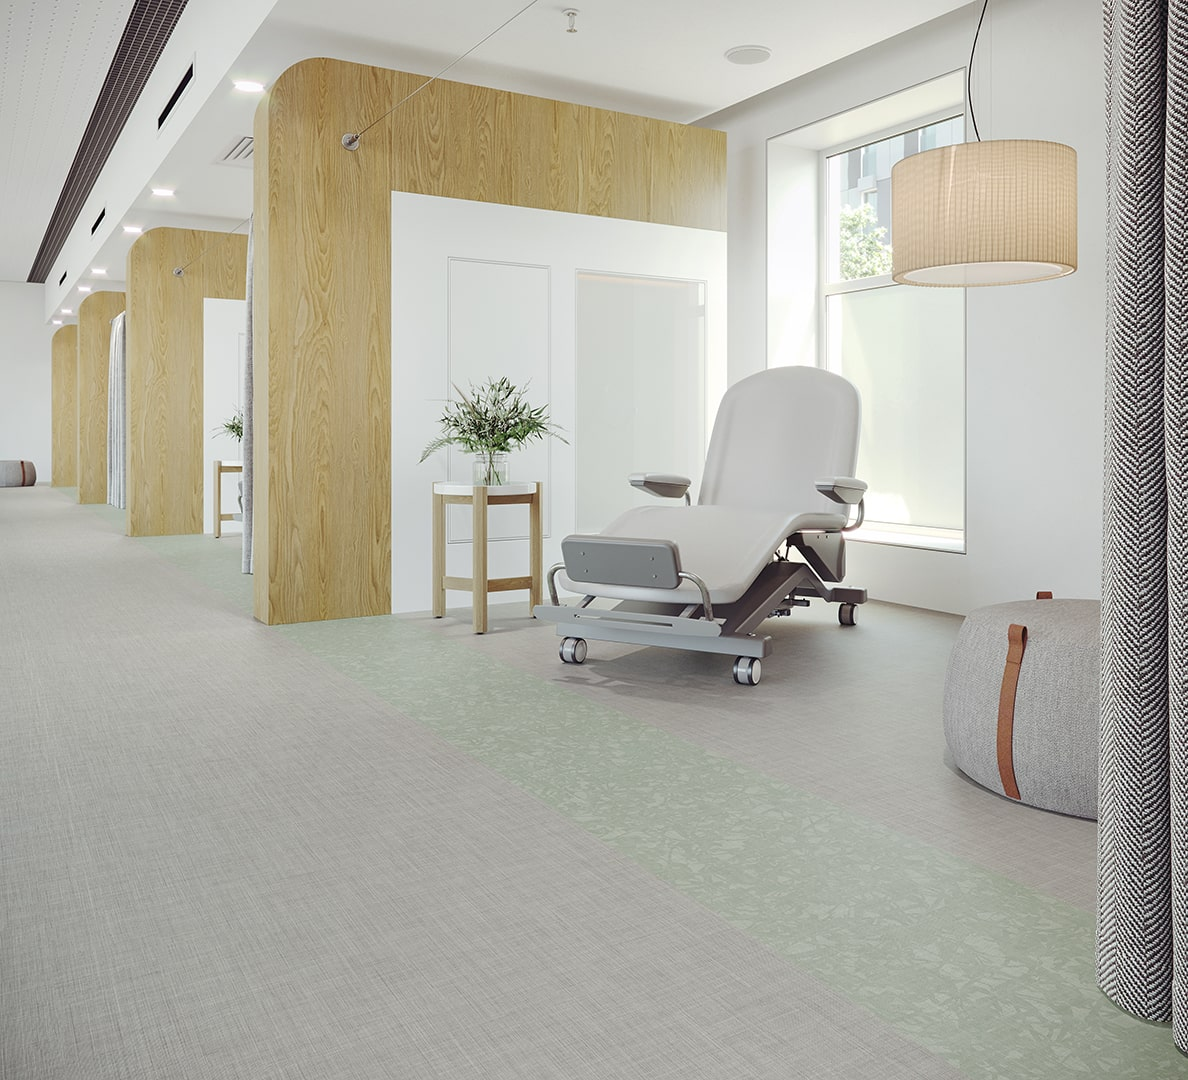 Healthcare Flooring Patient Corridor Bloom_Meander_Seedling_Wellspring_